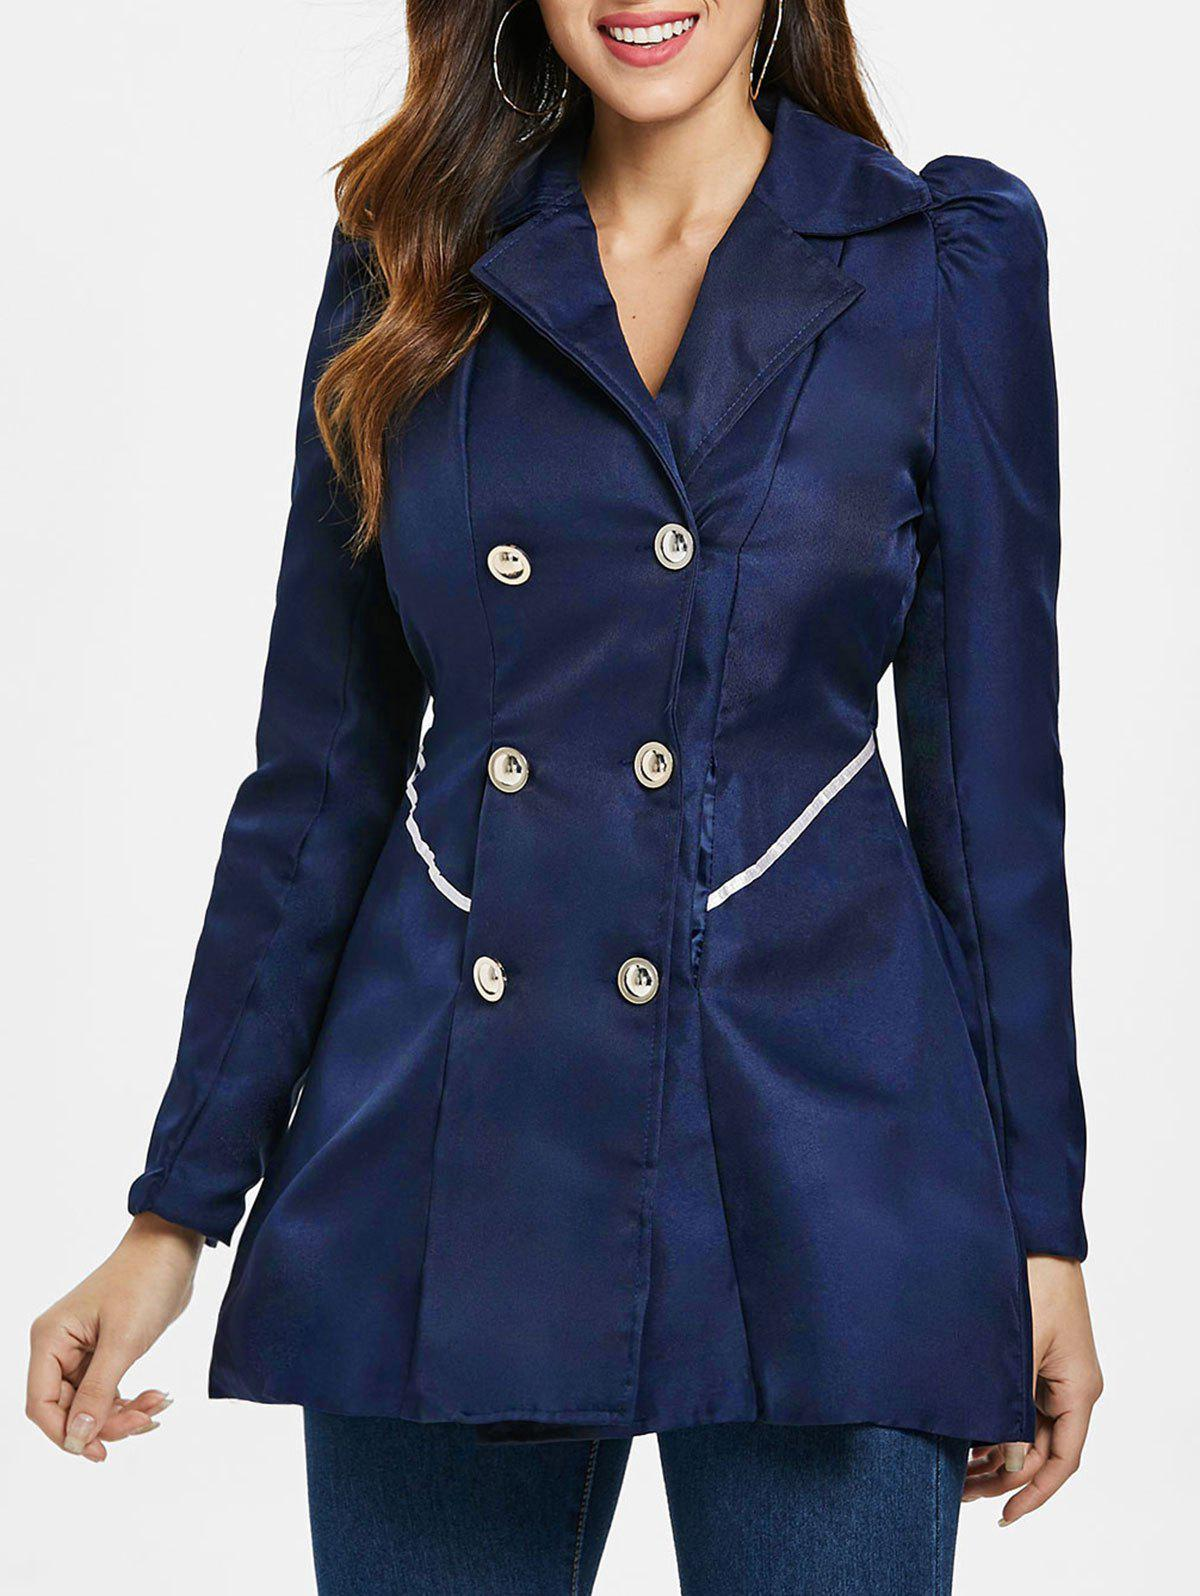 Chic Fit and Flare Coat With Double Breasts